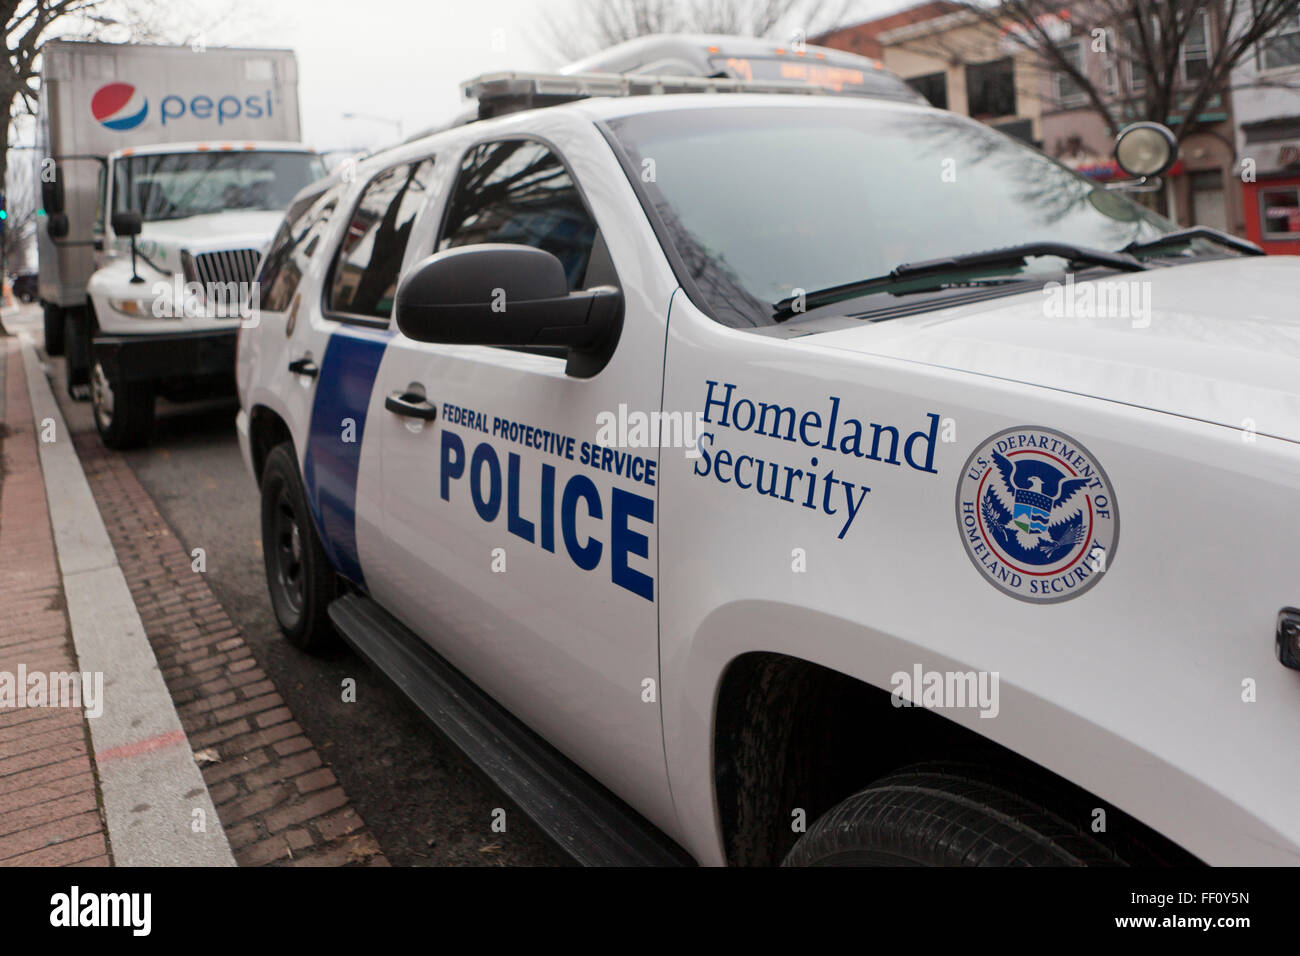 Homeland Security police car - Washington, DC USA Stock Photo